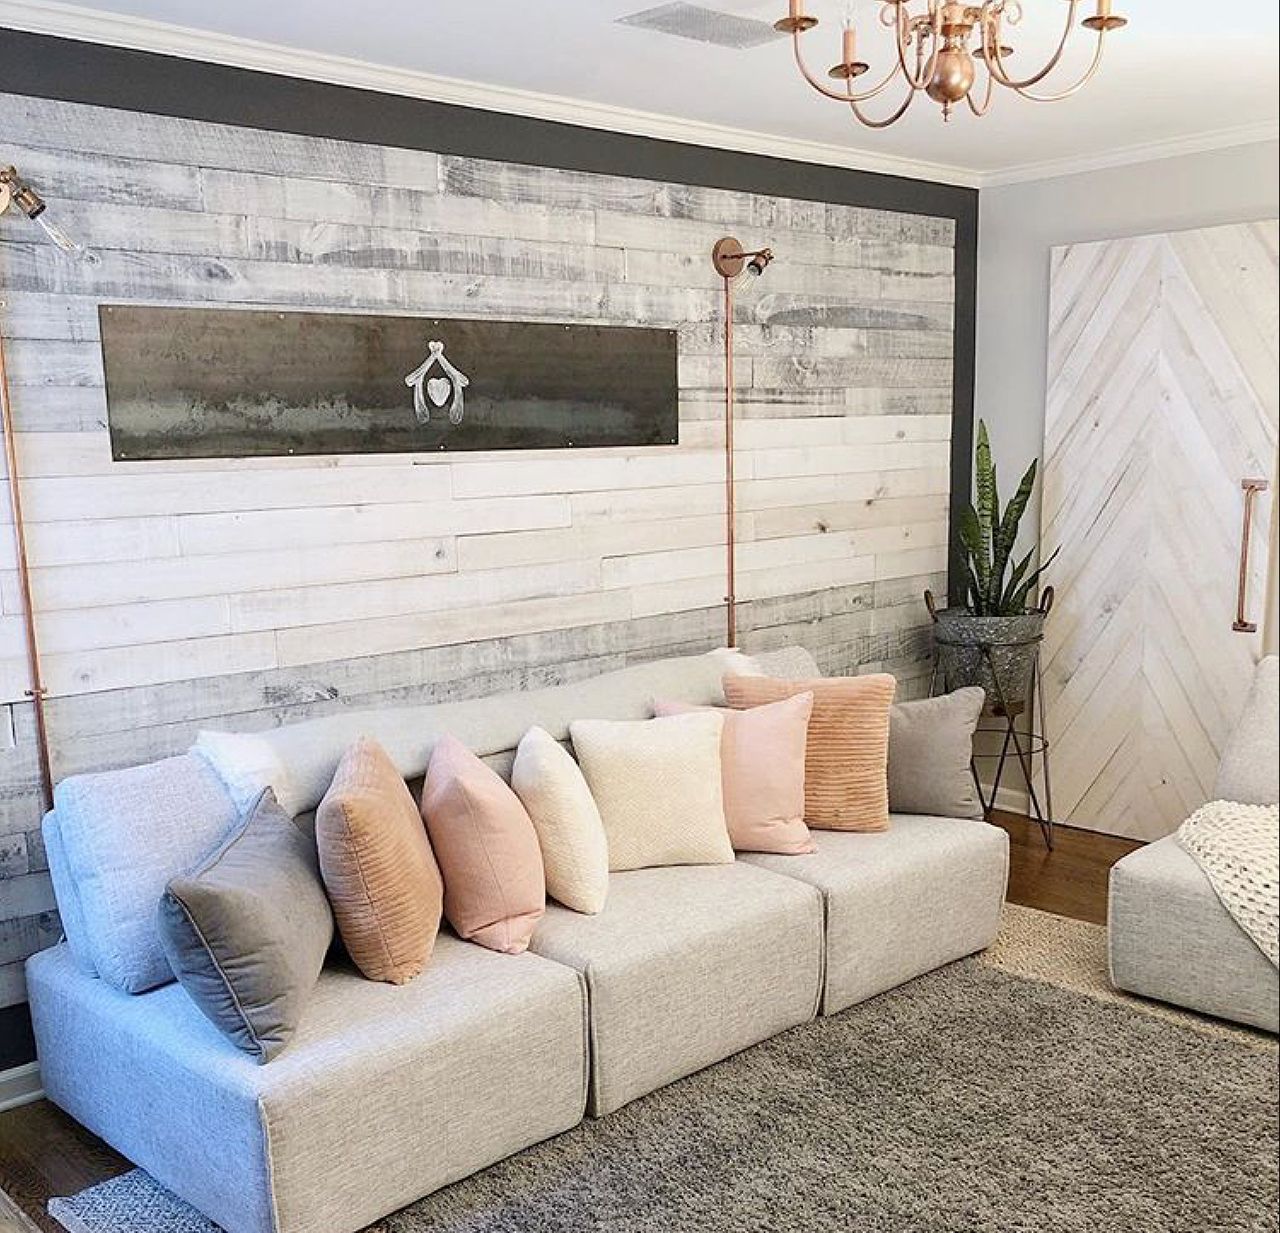 Nantucket Gray And White Washed Wall Boards Accent Wall By Yvonne Reclaimedkarma White Washed Wood Paneling Wall Board Accent Walls In Living Room